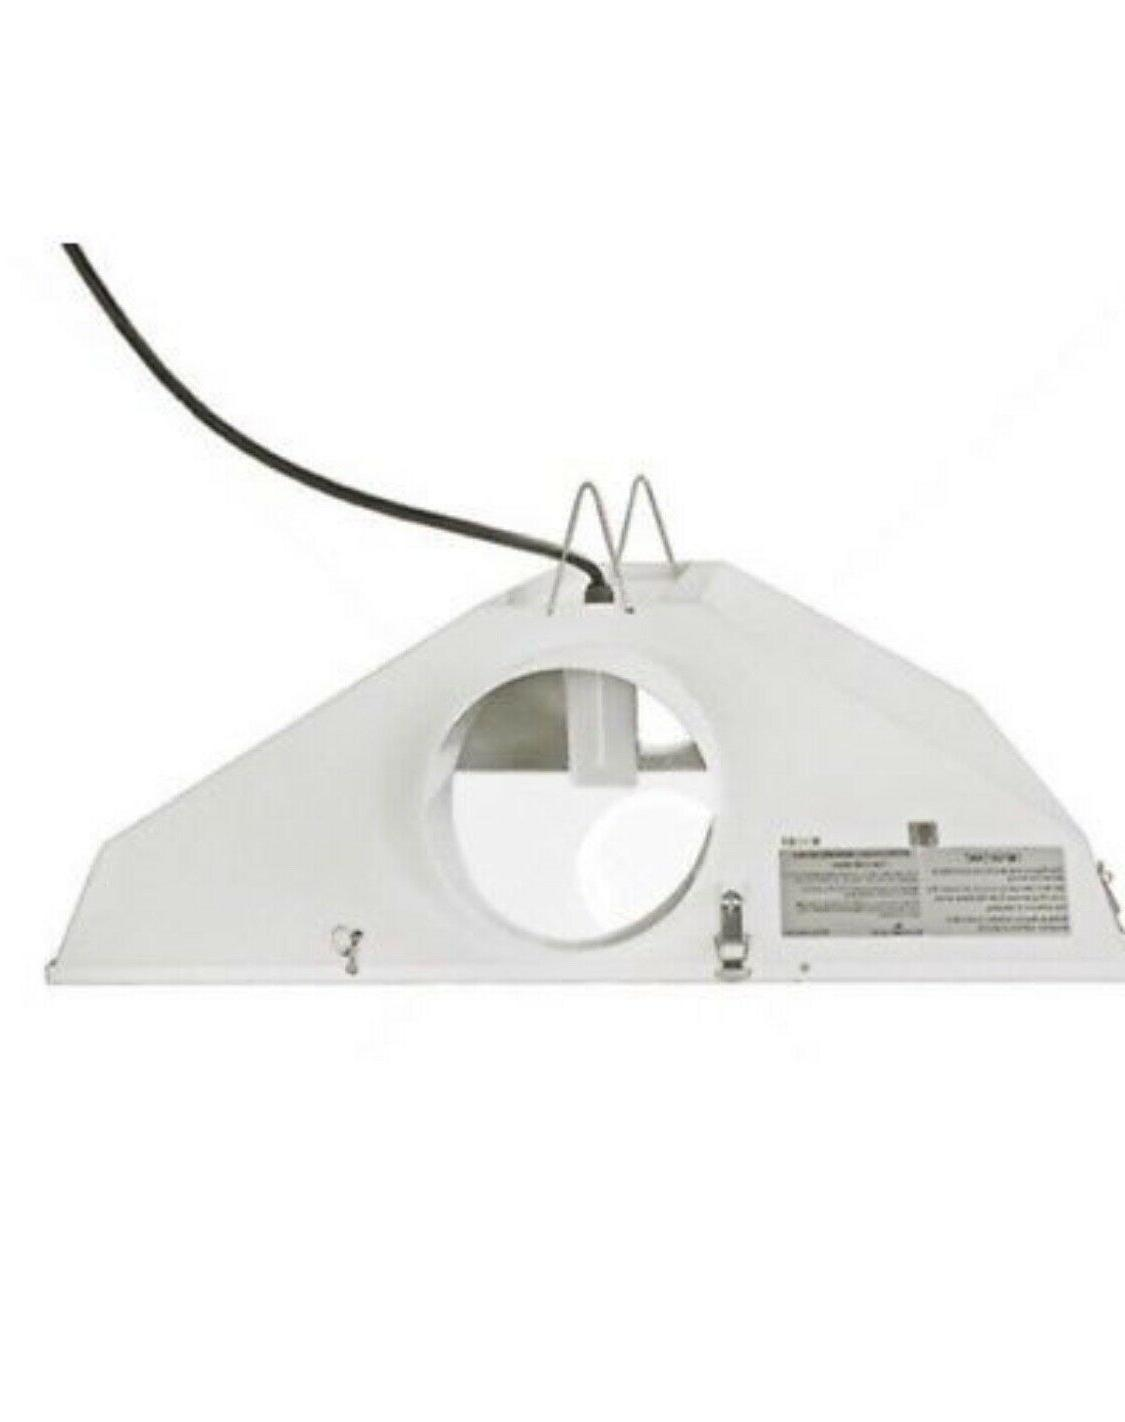 NEW! Hydrofarm Raptor Air Light Fixture Reflector